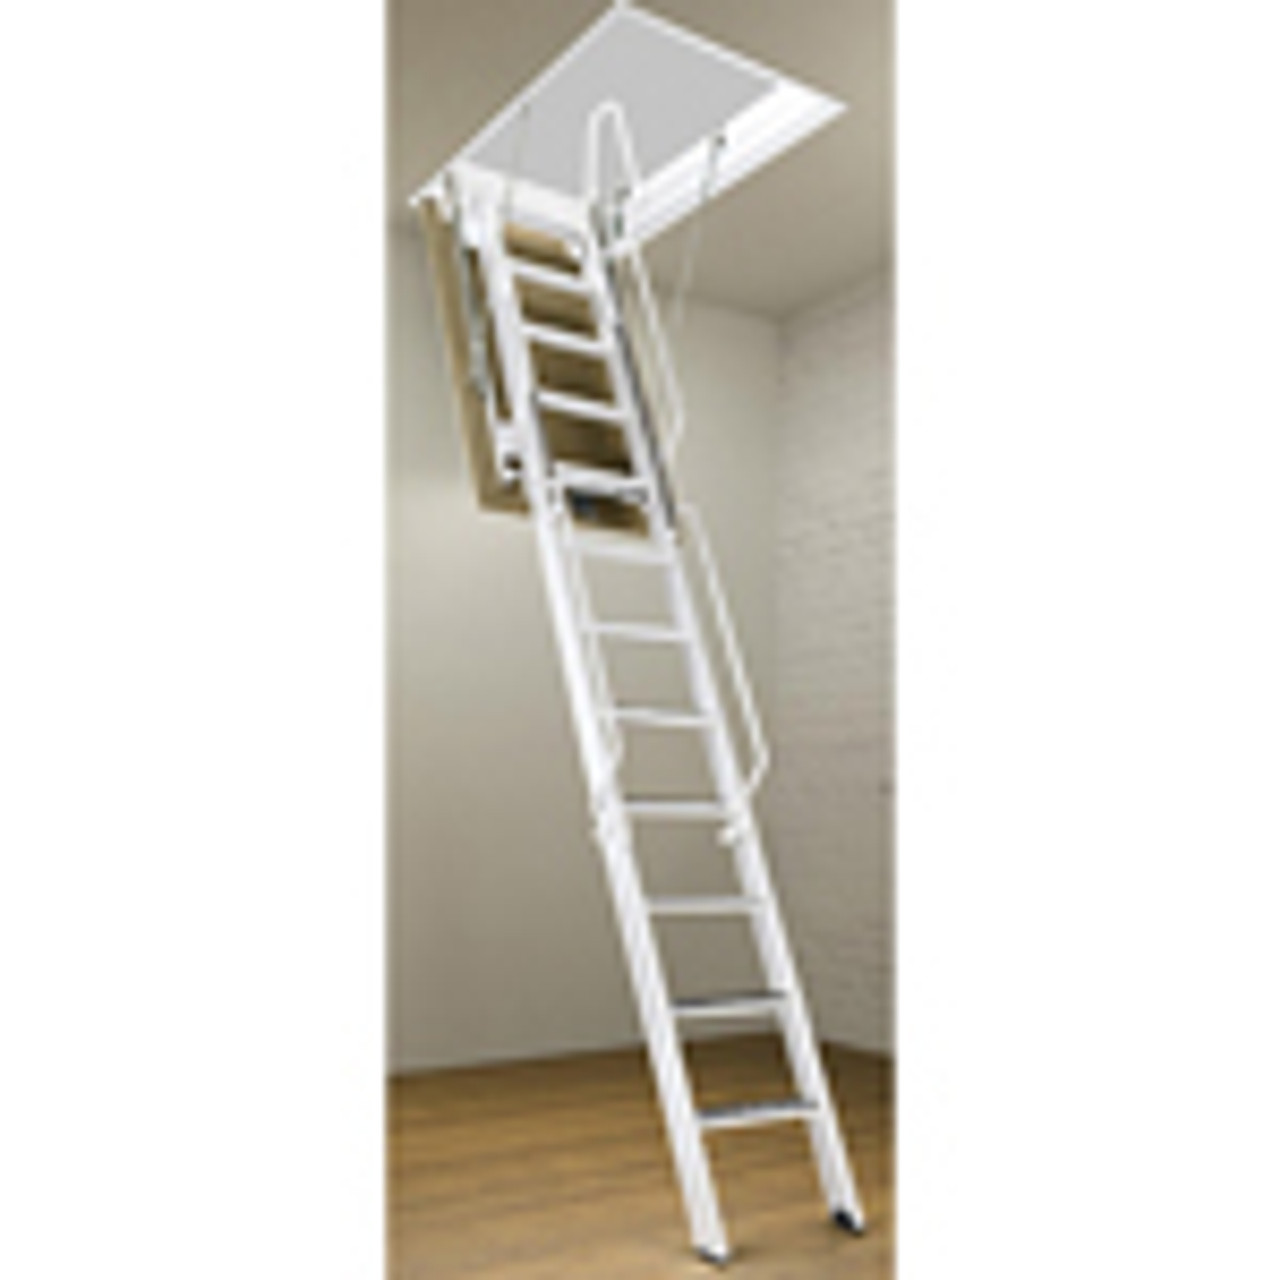 Commercial Rated Attic Ladders